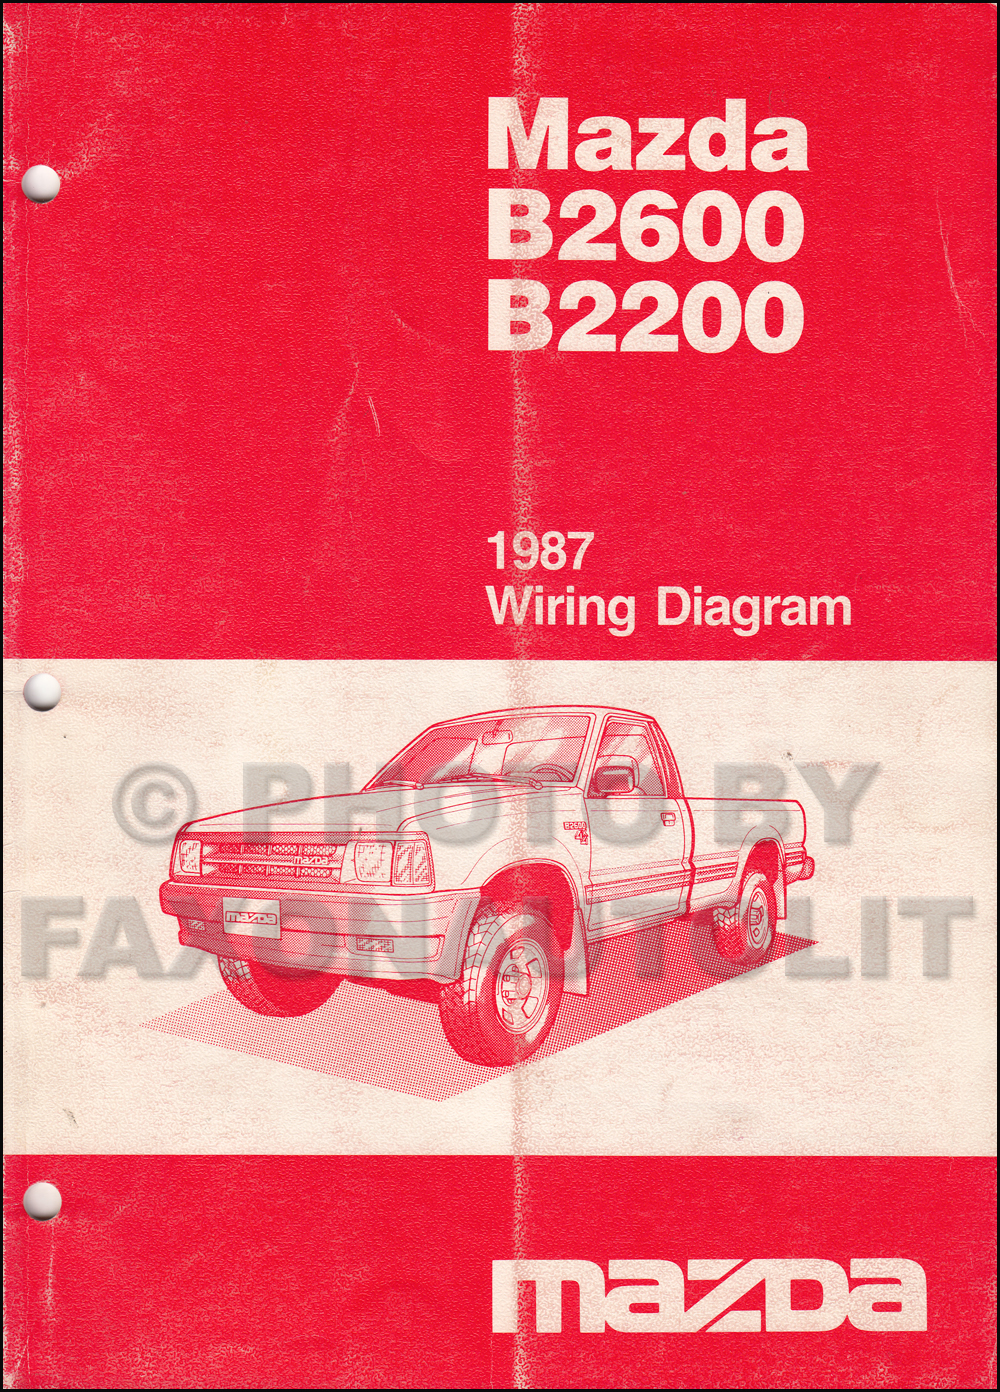 1987MazdaB2600B2200OWD ignition wiring diagram for 1990 mazda b2200 1989 mazda b2200 1996 Mazda B2300 Wiring Blower at suagrazia.org